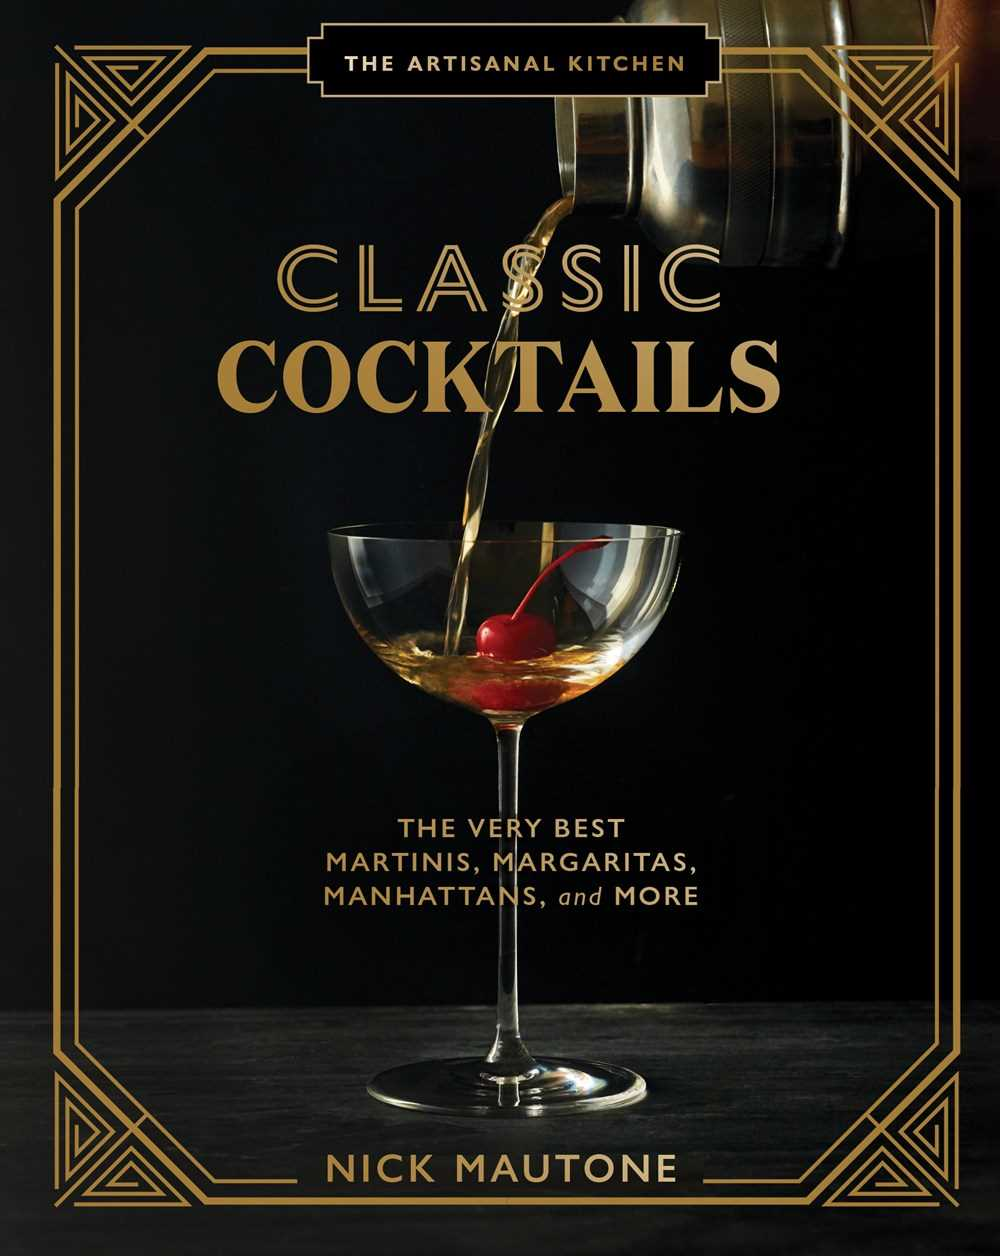 The Artisanal Kitchen: Classic Cocktails